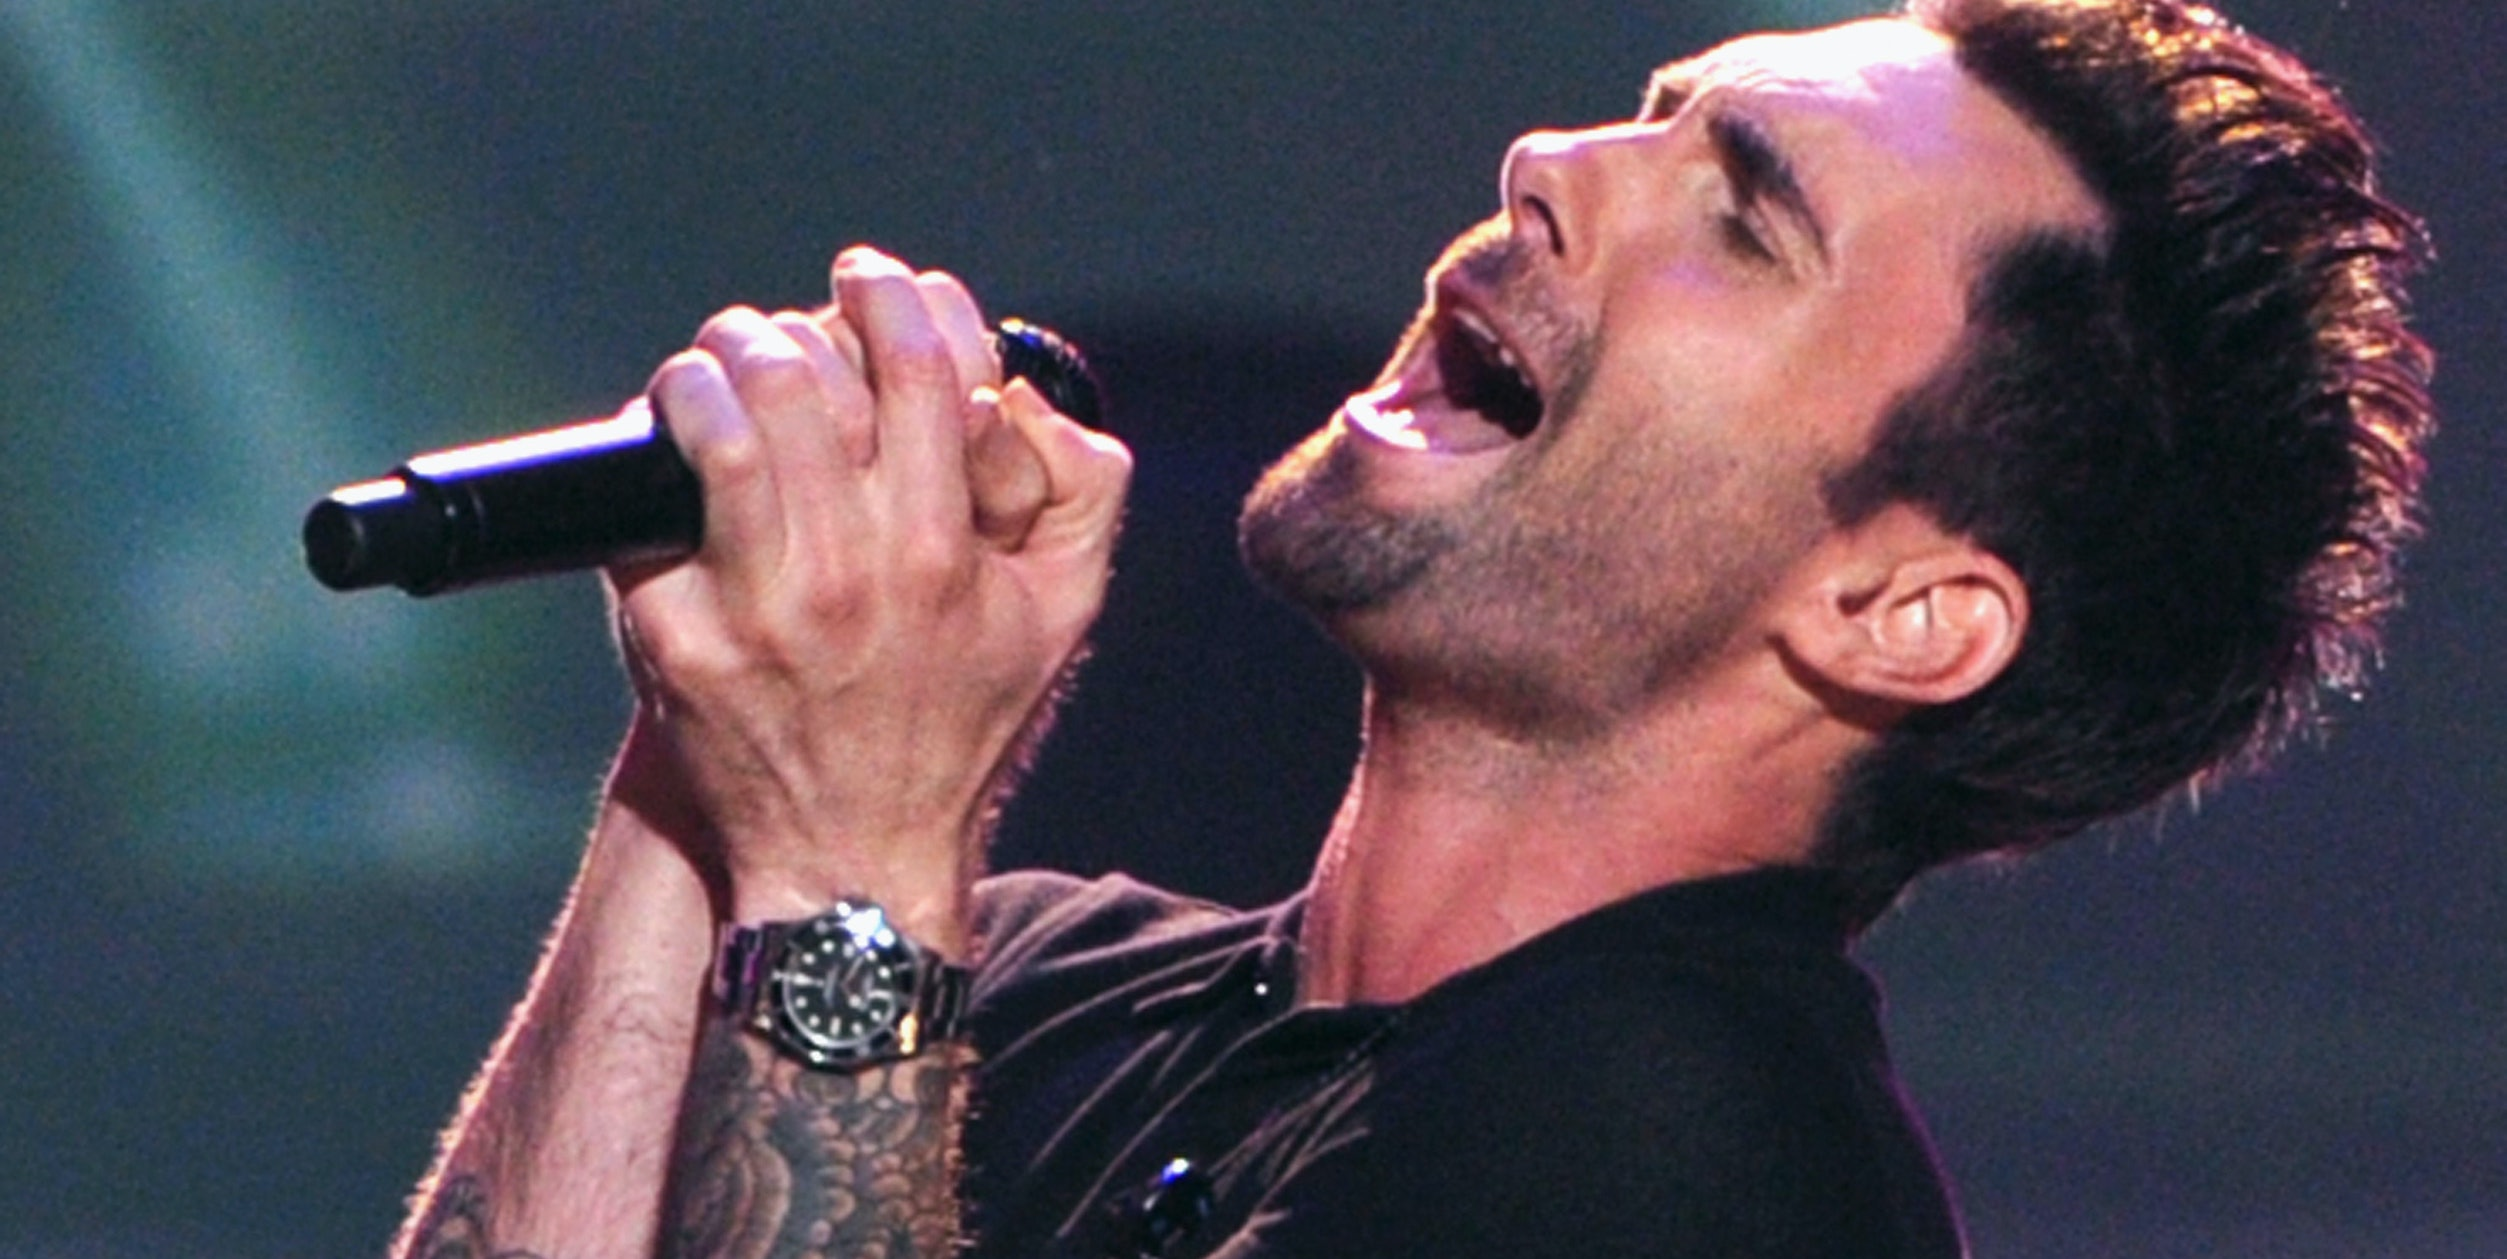 Adam Levine makes ya swoon with his body ink screaming his health to the world.